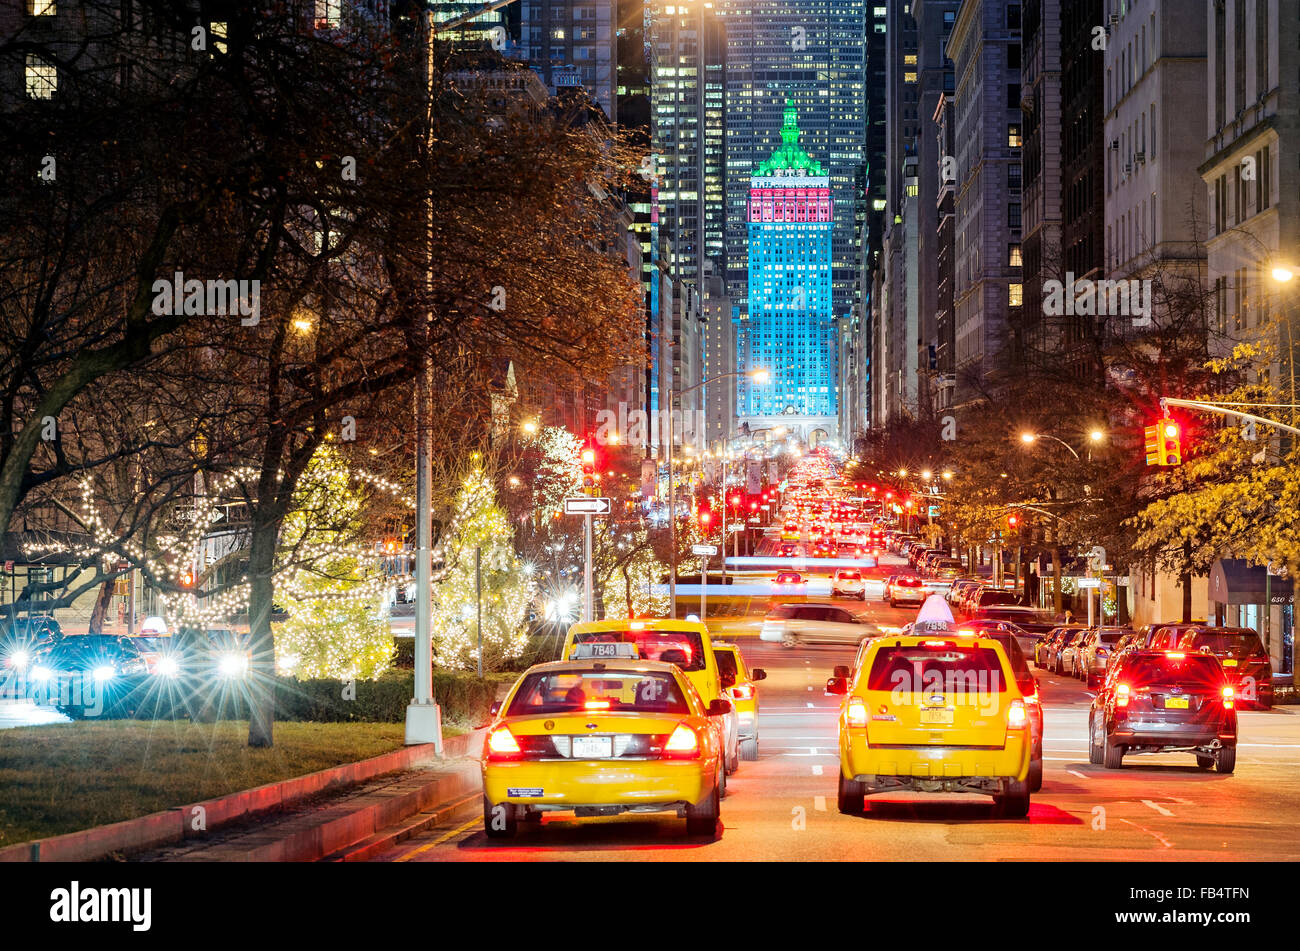 new york christmas new york street park avenue decorations new york stock photo 92920121 alamy. Black Bedroom Furniture Sets. Home Design Ideas